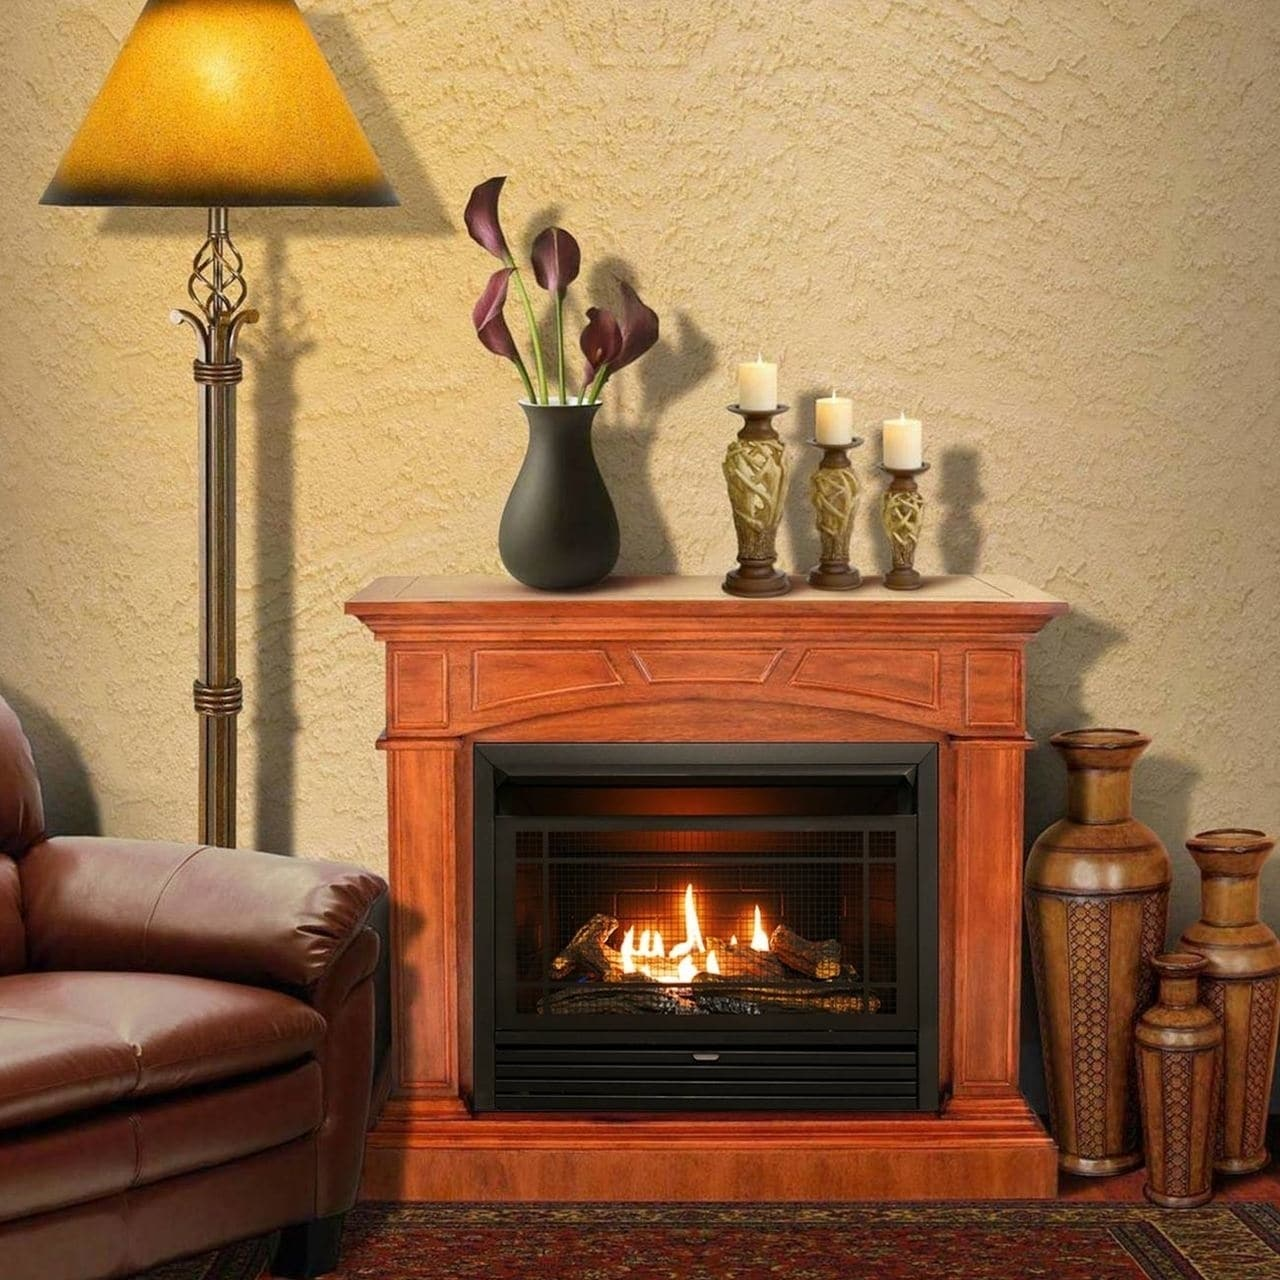 Btu Gas Fireplace Duluth Forge Dual Fuel Ventless Gas Fireplace 26 000 Btu Remote Control Heritage Cherry Finish